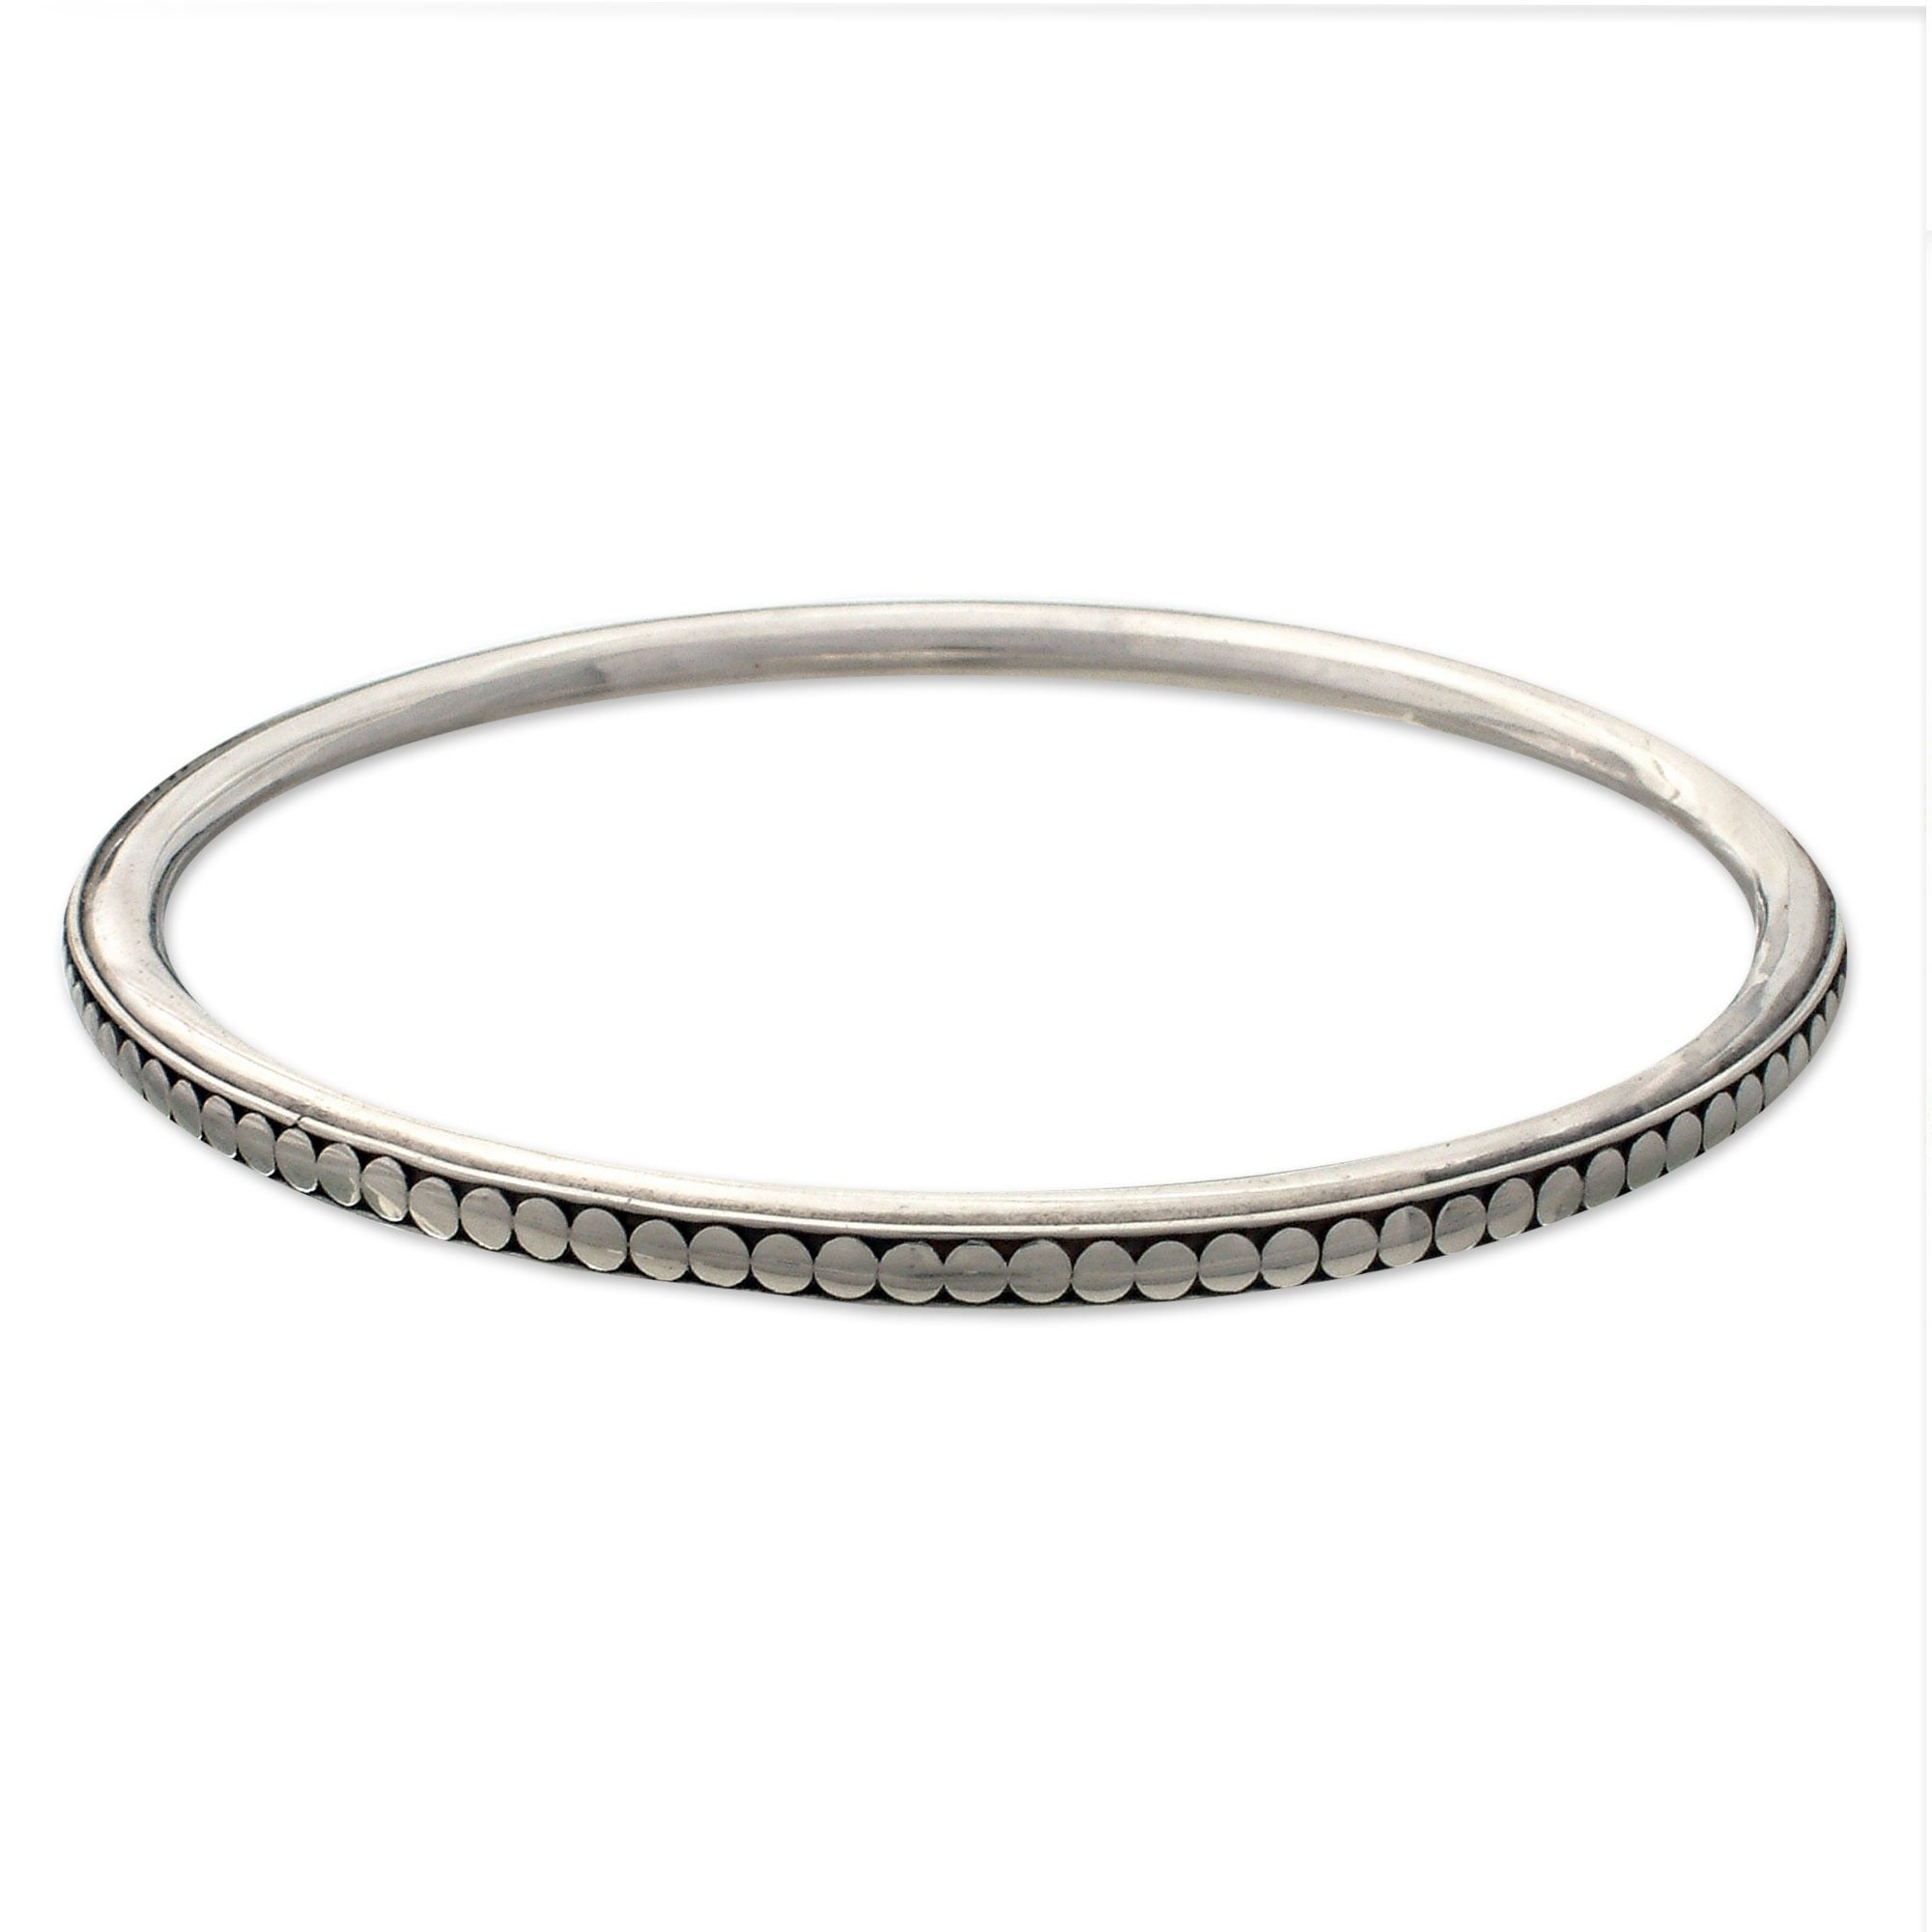 bangles silverly bangle s triple bracelet multi plain pin sterling bracelets women stacking interlinked silver mm